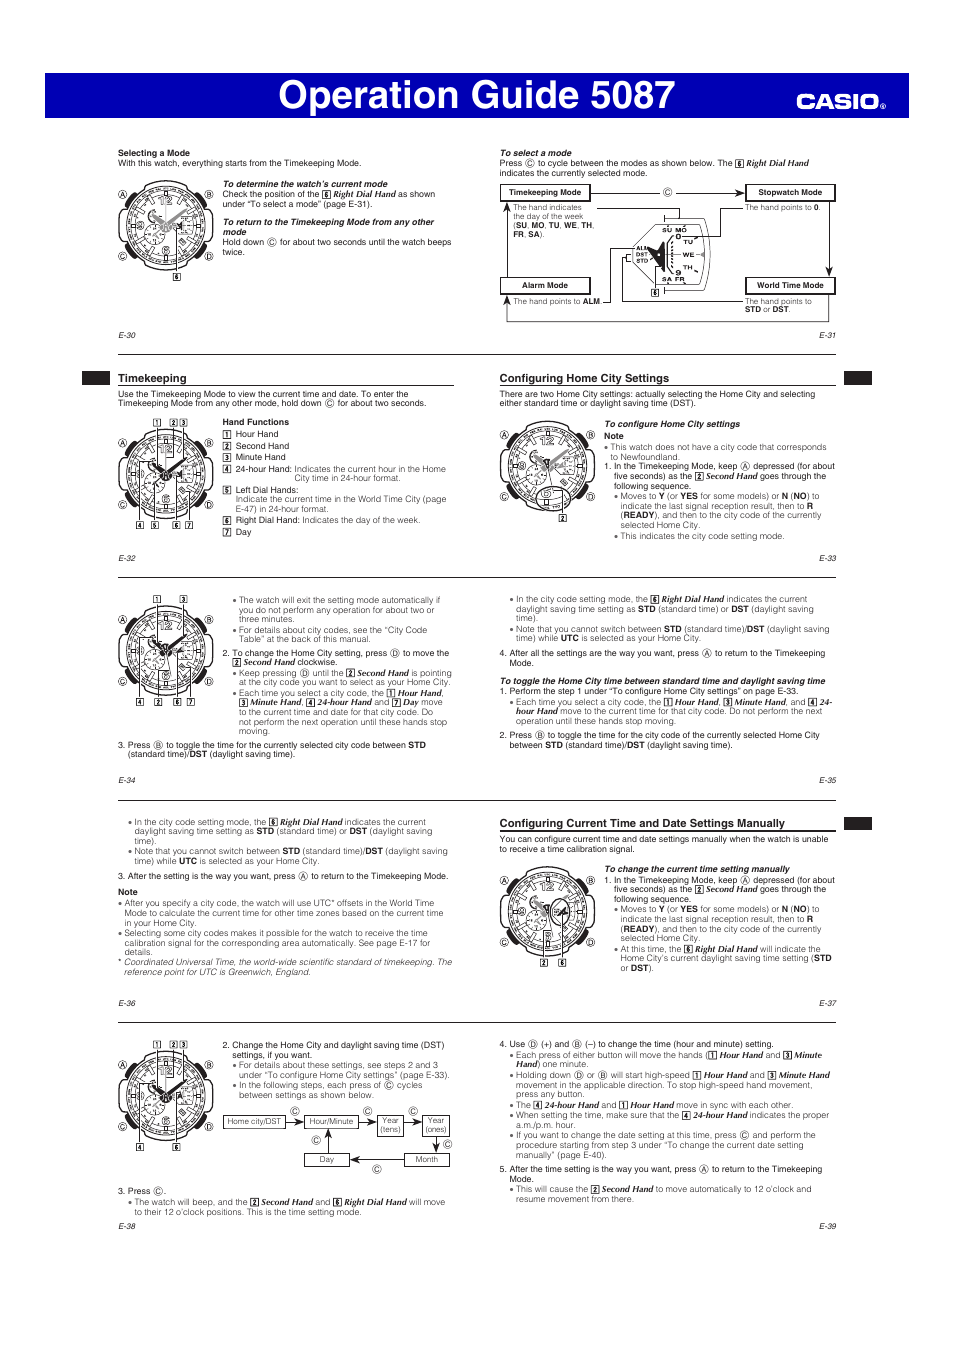 Operation guide 5087 | g-shock gw-4000 user manual | page 5 / 8.